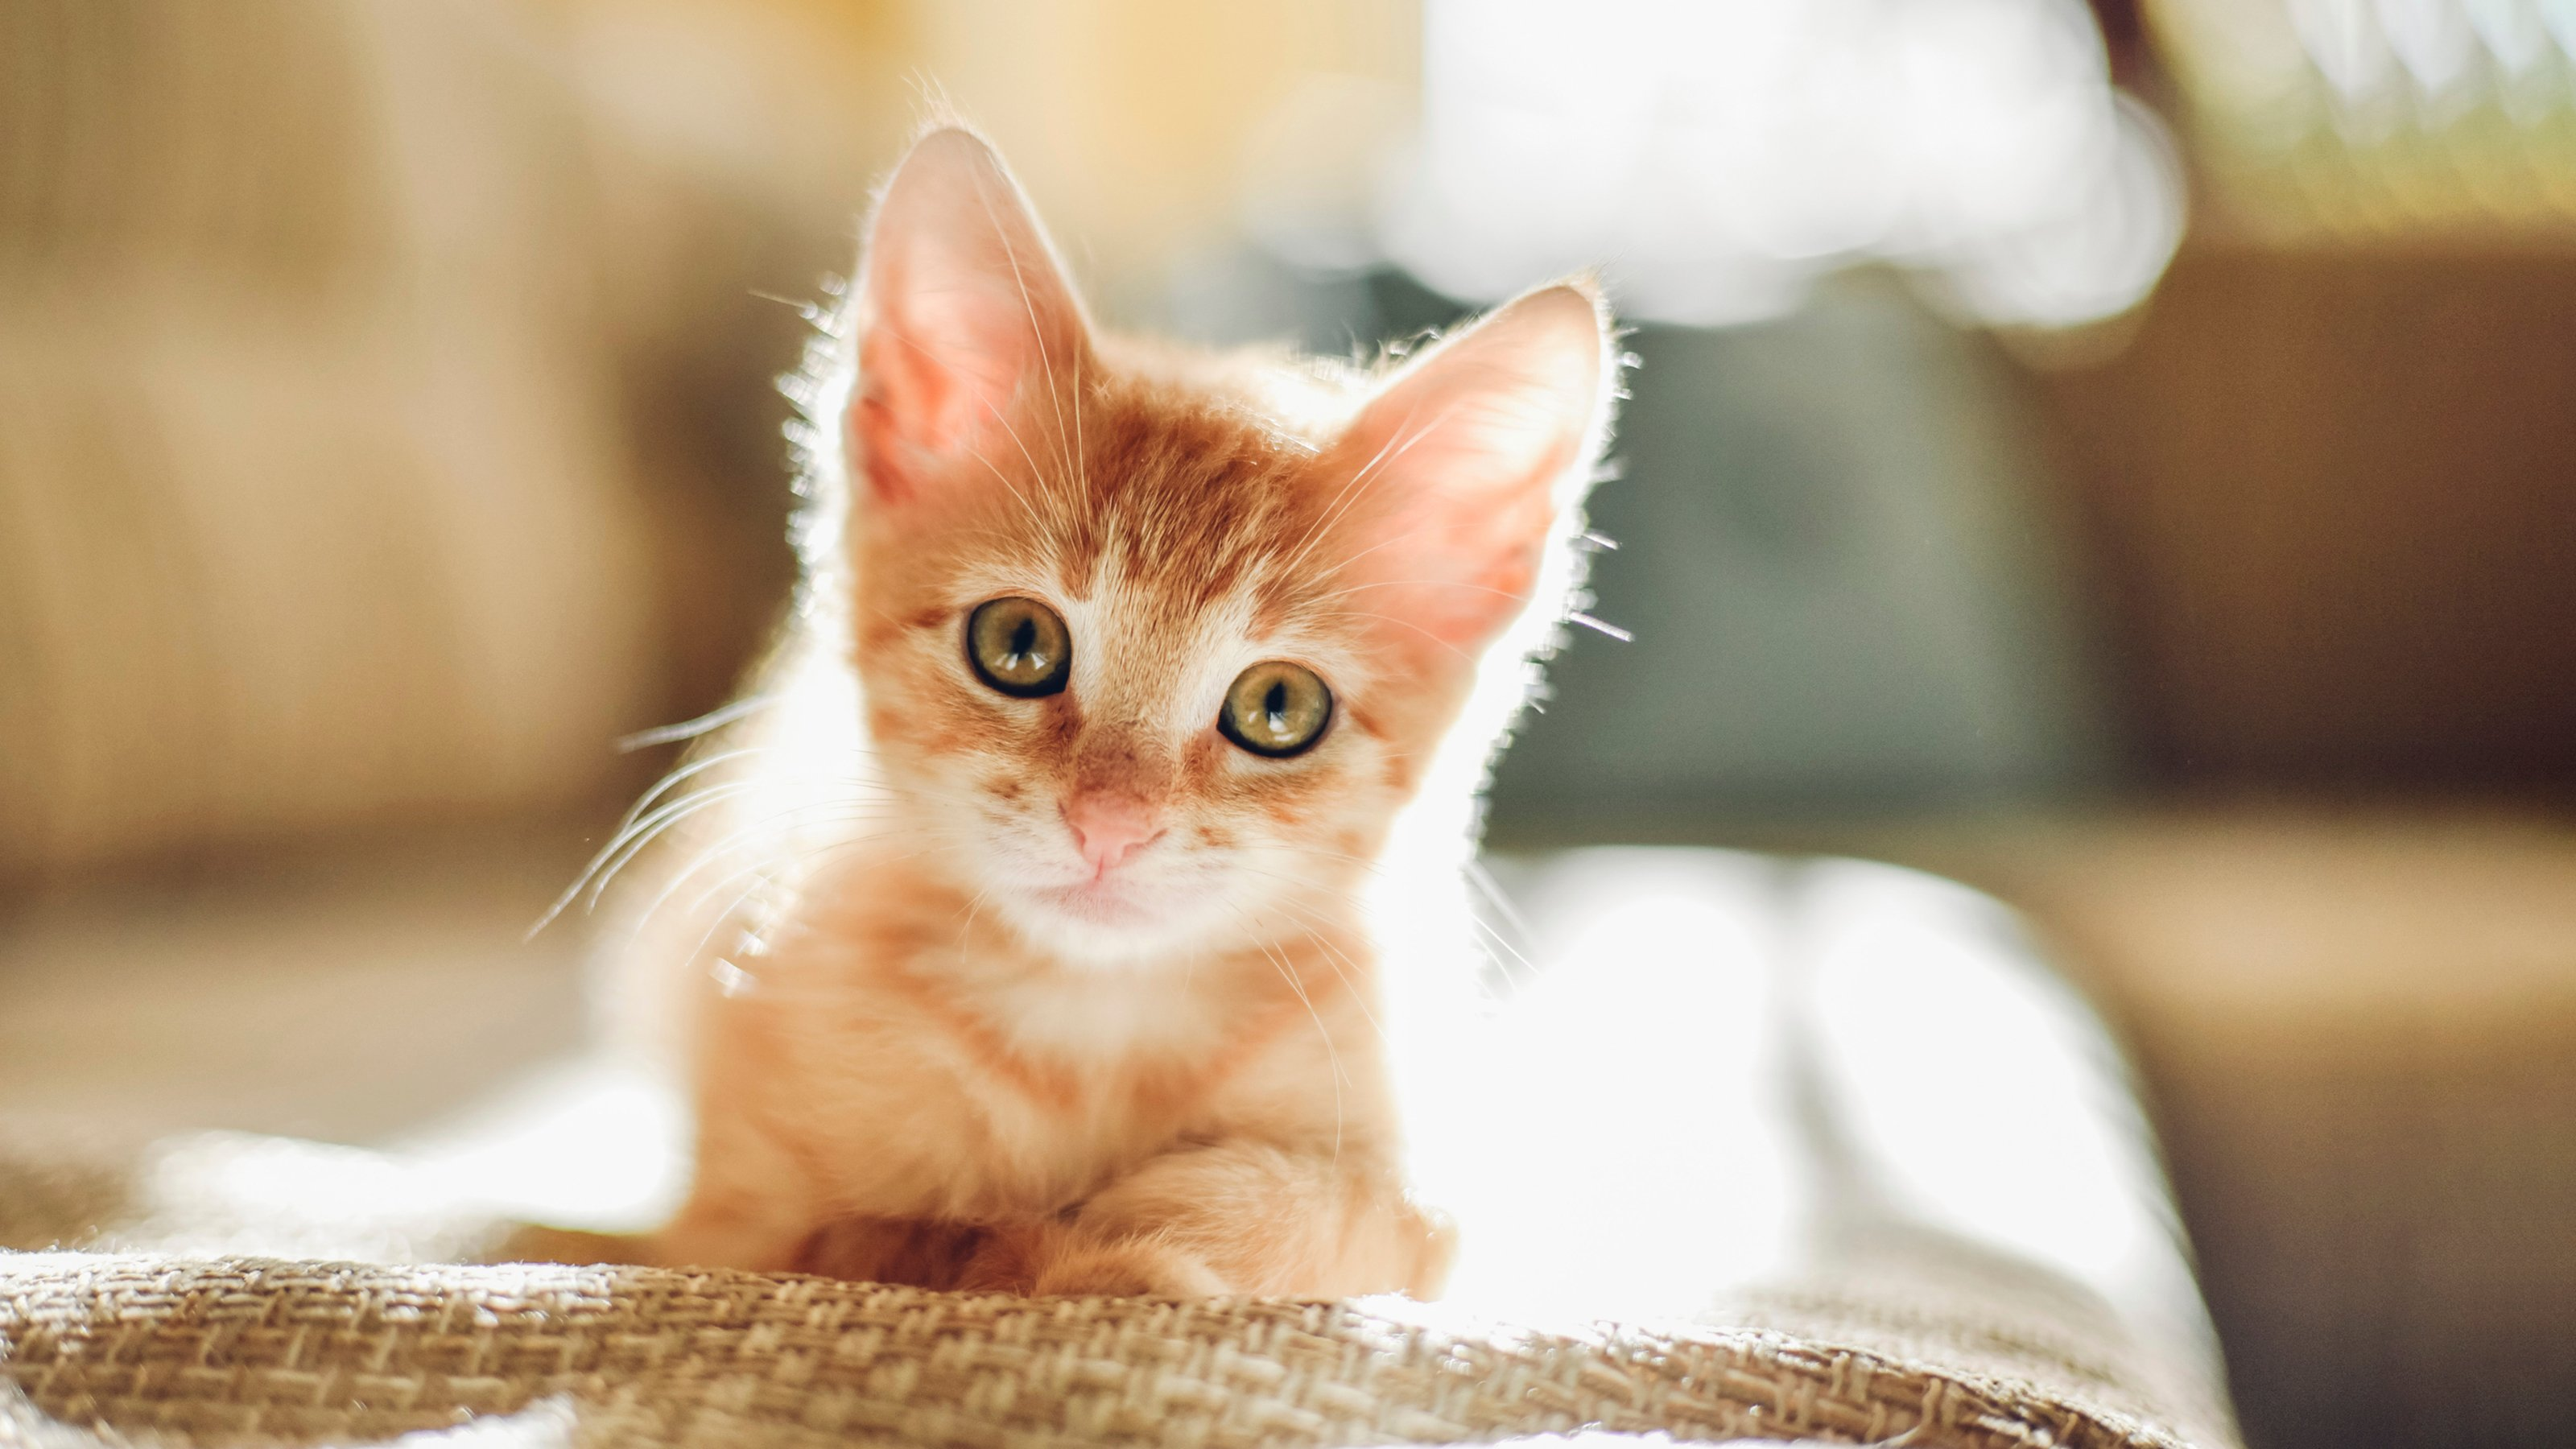 Bringing Home a New Kitten | Cat Advice | Vets4Pets